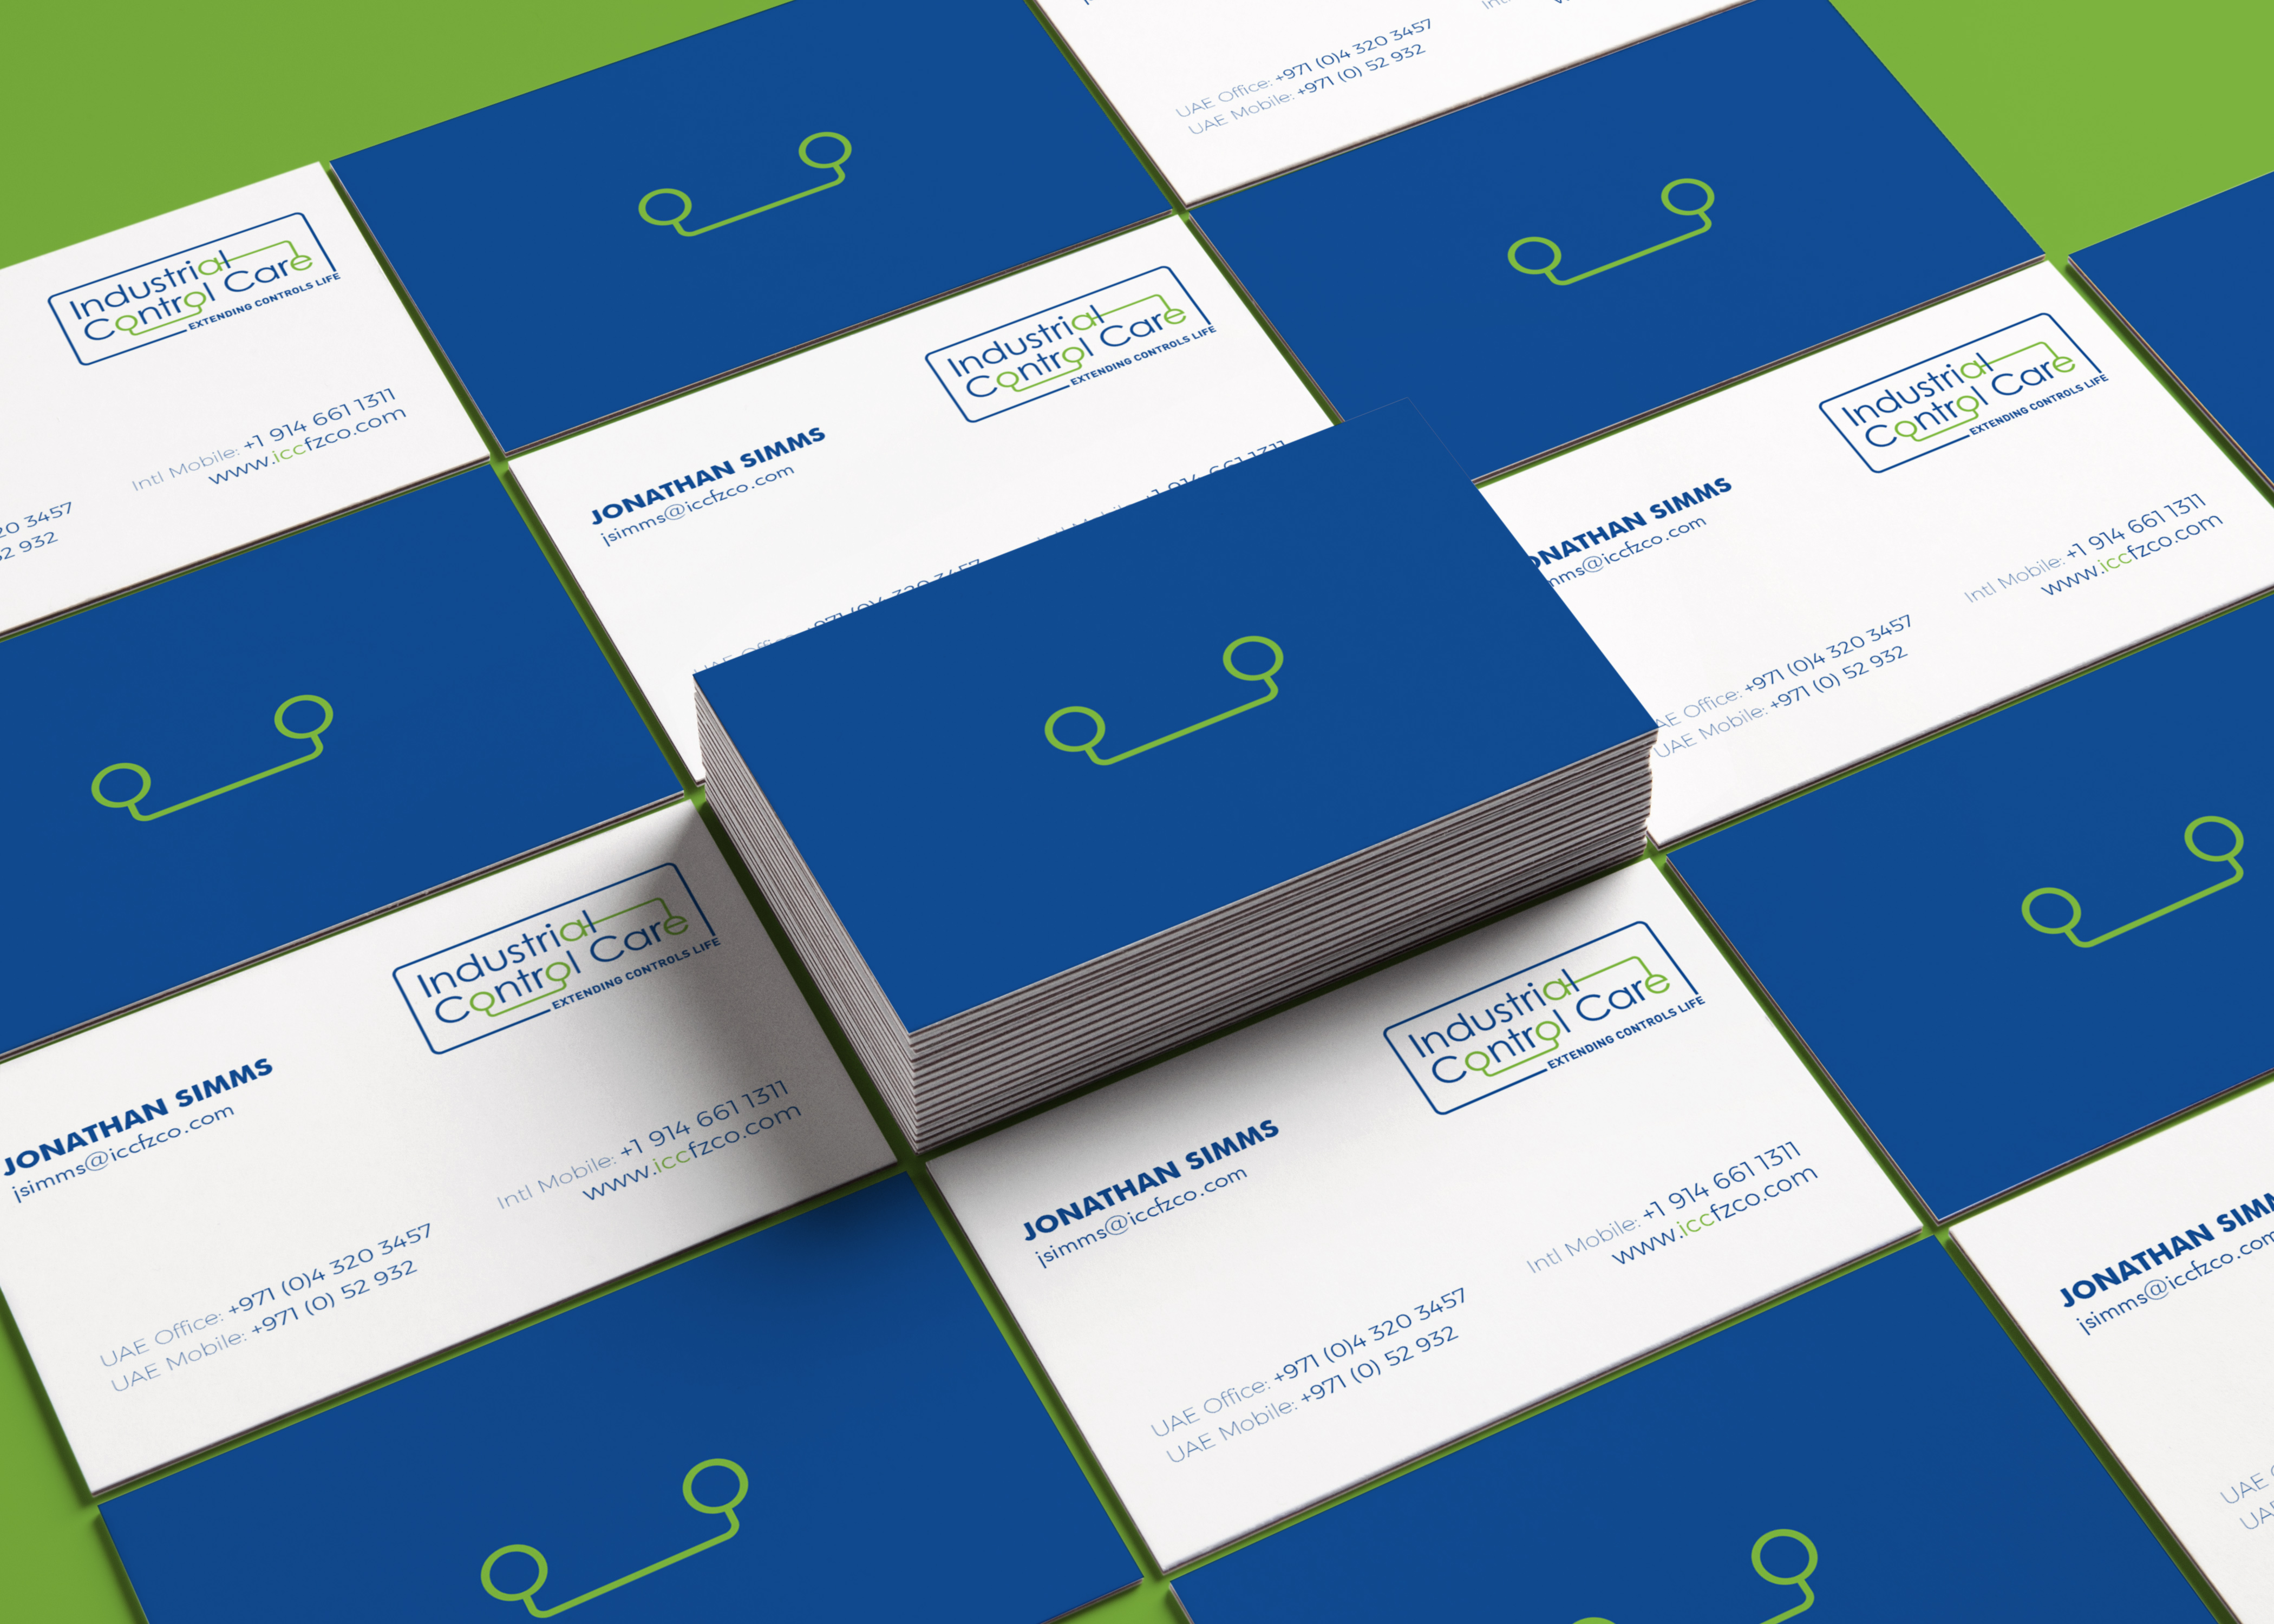 Blue and white business cards on a green background